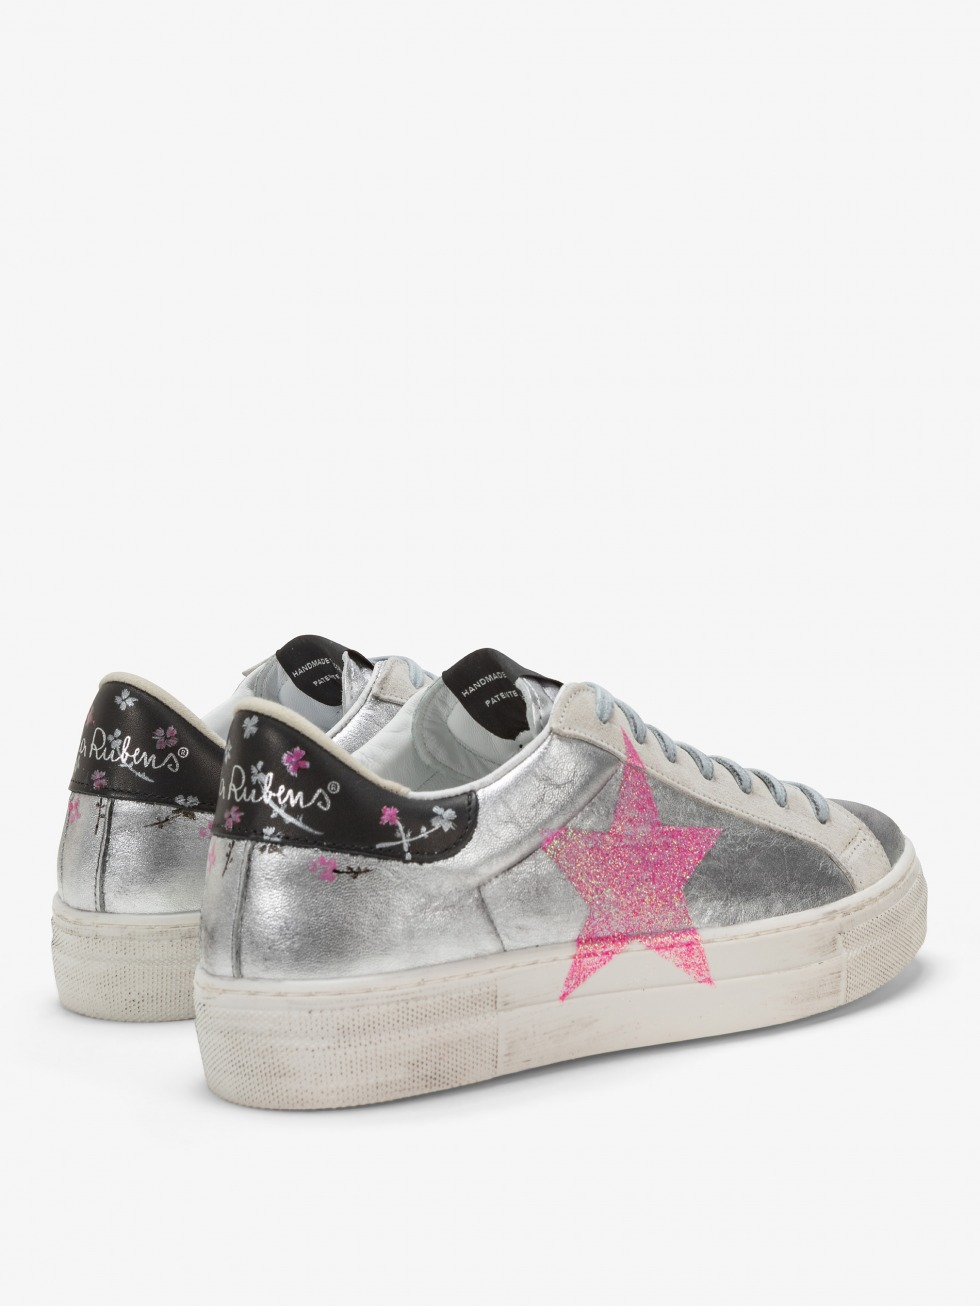 Martini Sneakers Silver Flowers - Star